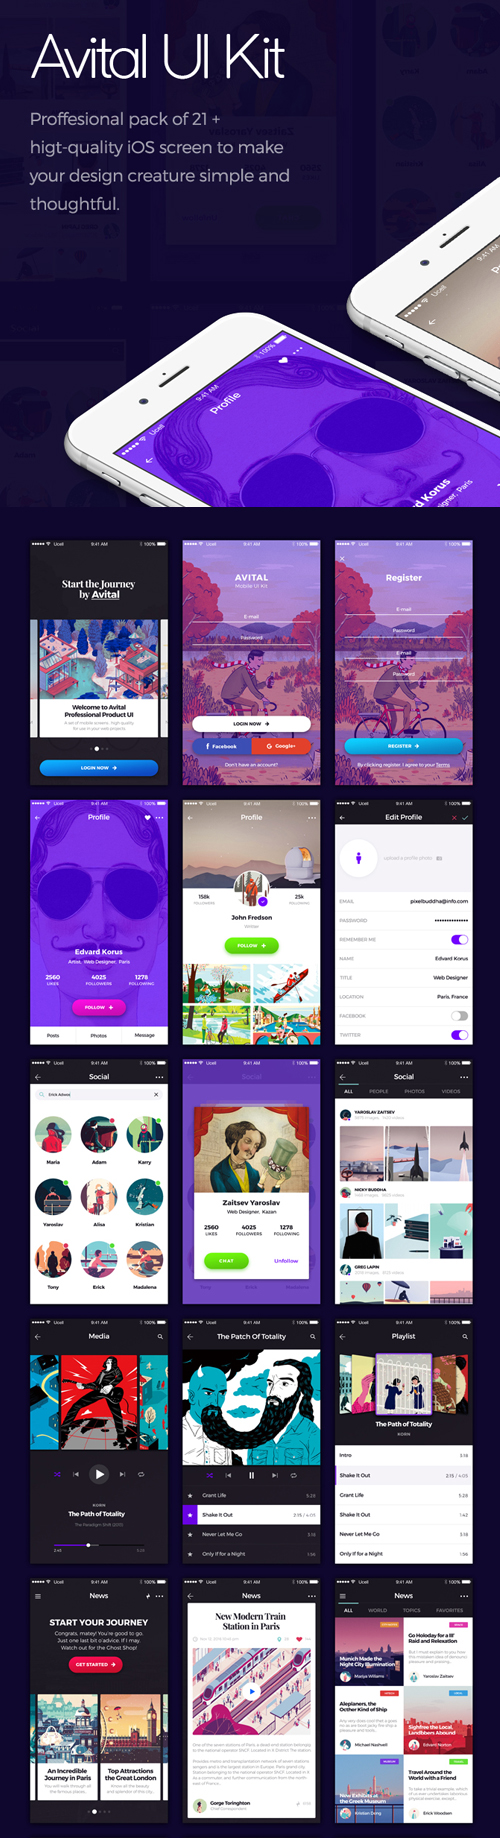 Free Avital Mobile UI Kit